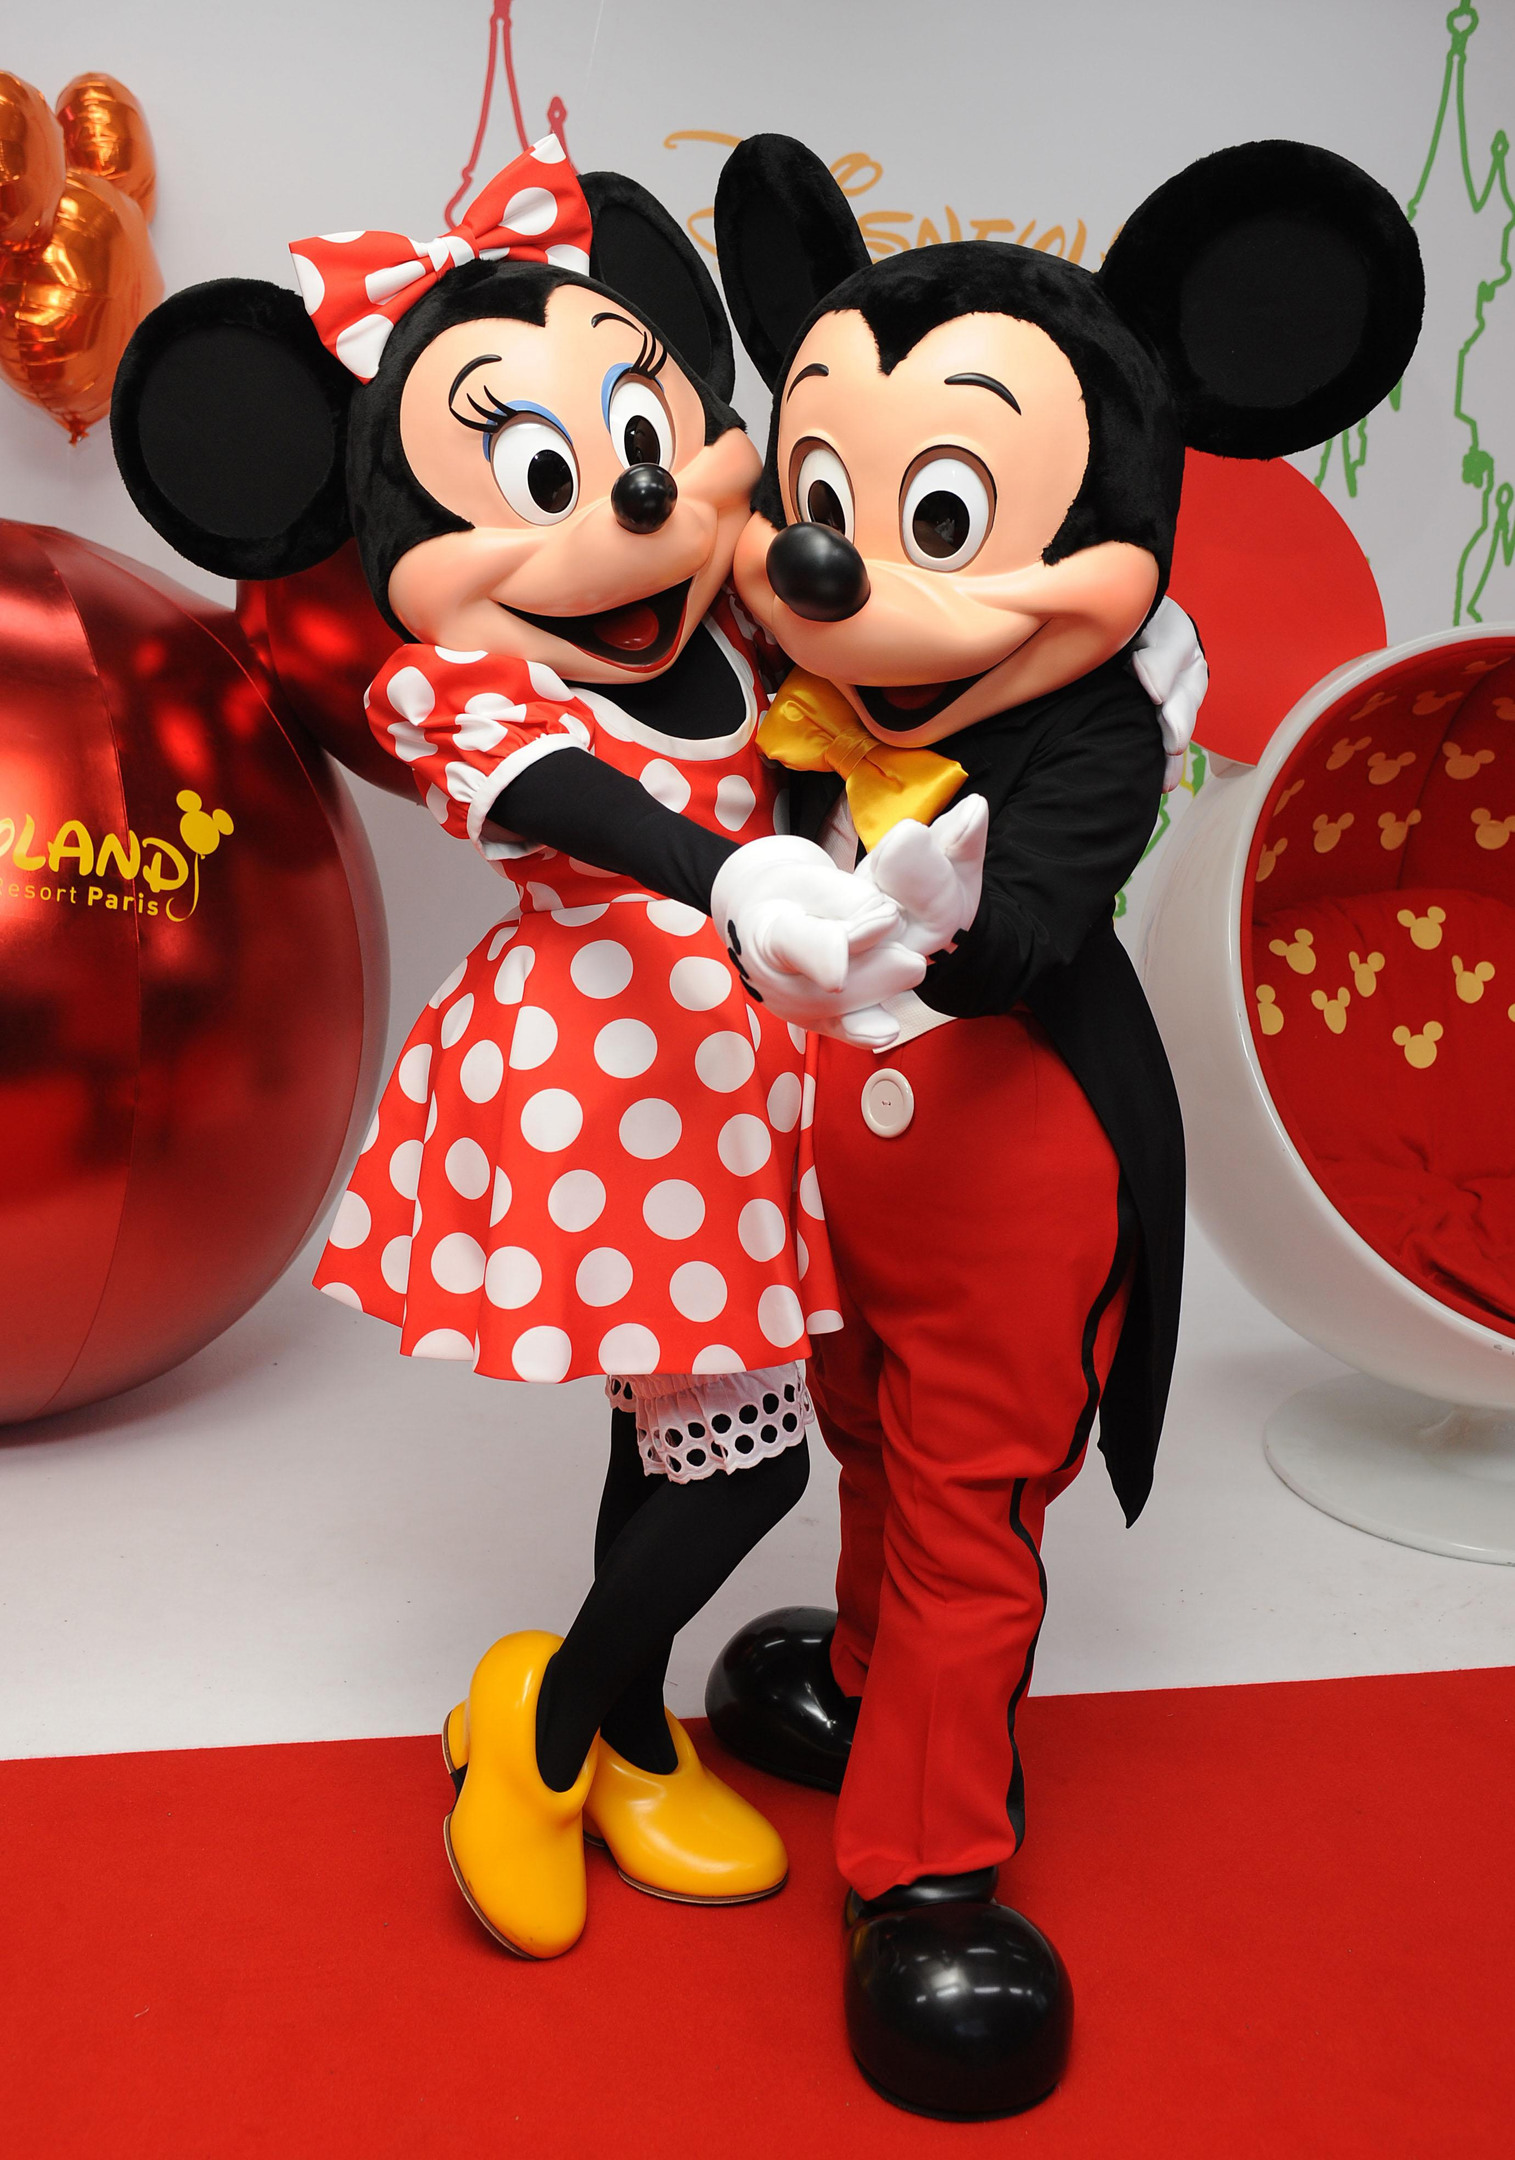 You're never too old for Disney magic - The Sunday Post